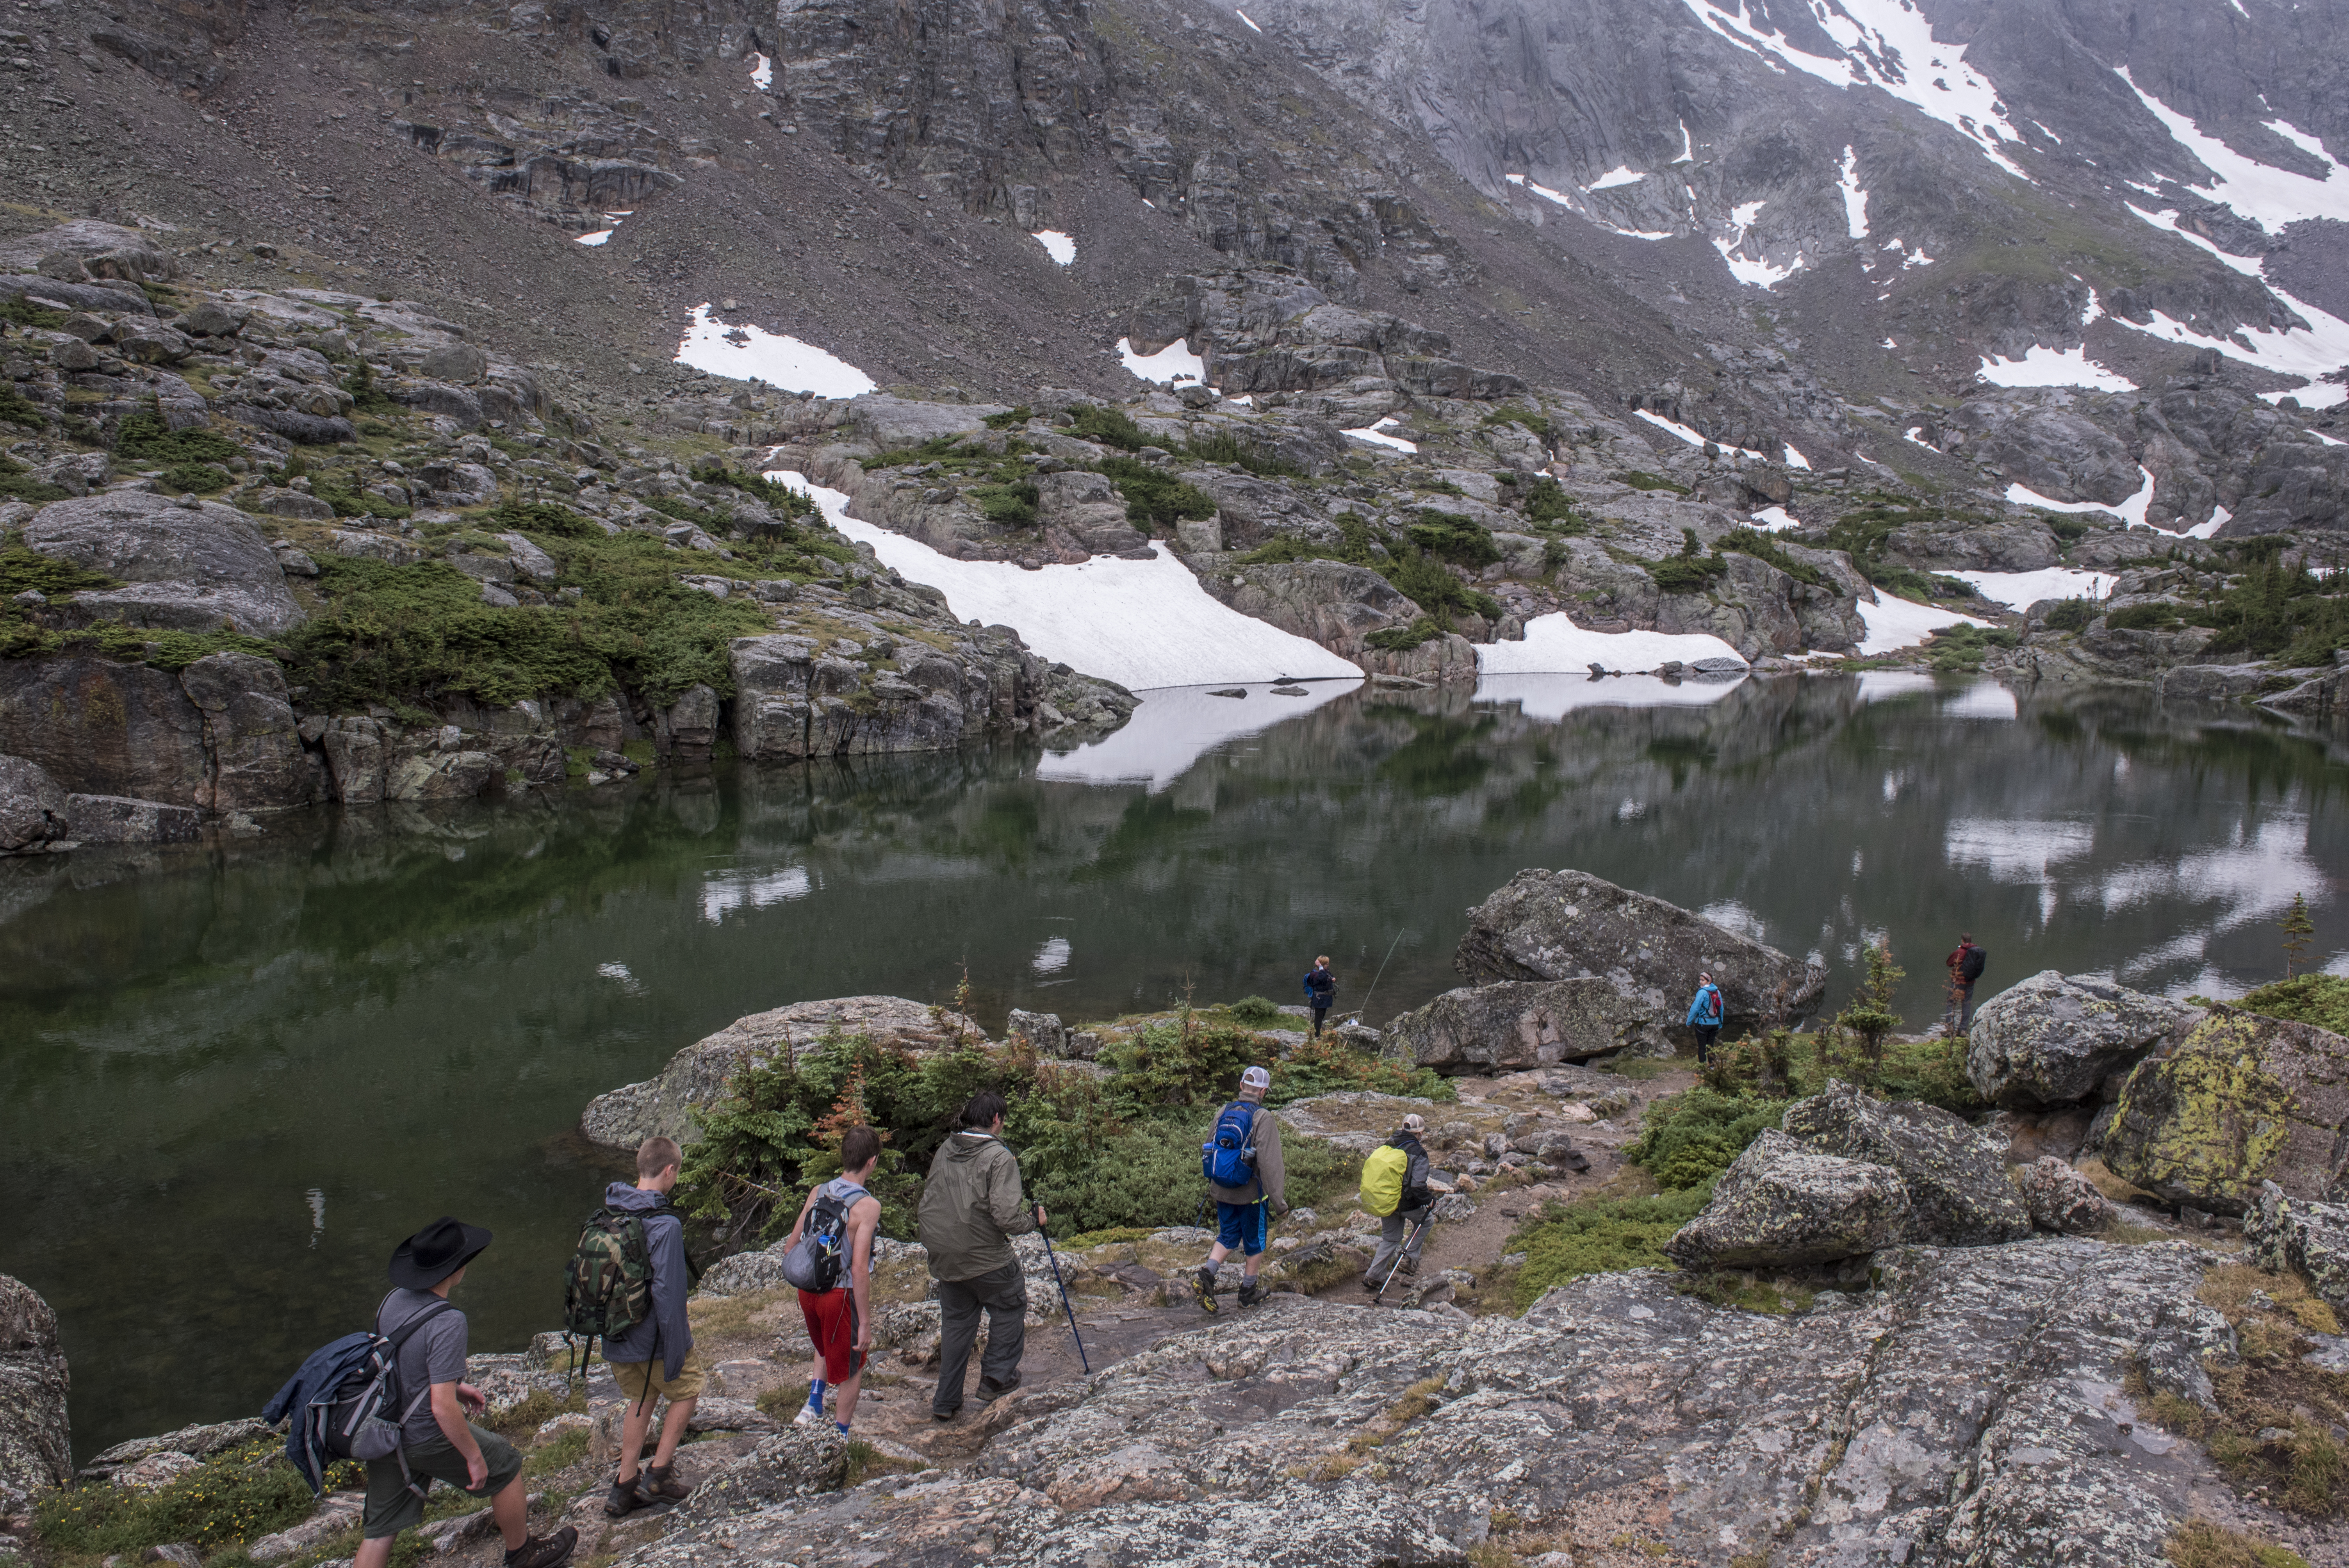 Scouts from  PA  hike during a cloudy, rainy day through Loch Valle, on the trail to Sky Pond, in Rocky Mountain National Park, Colorado